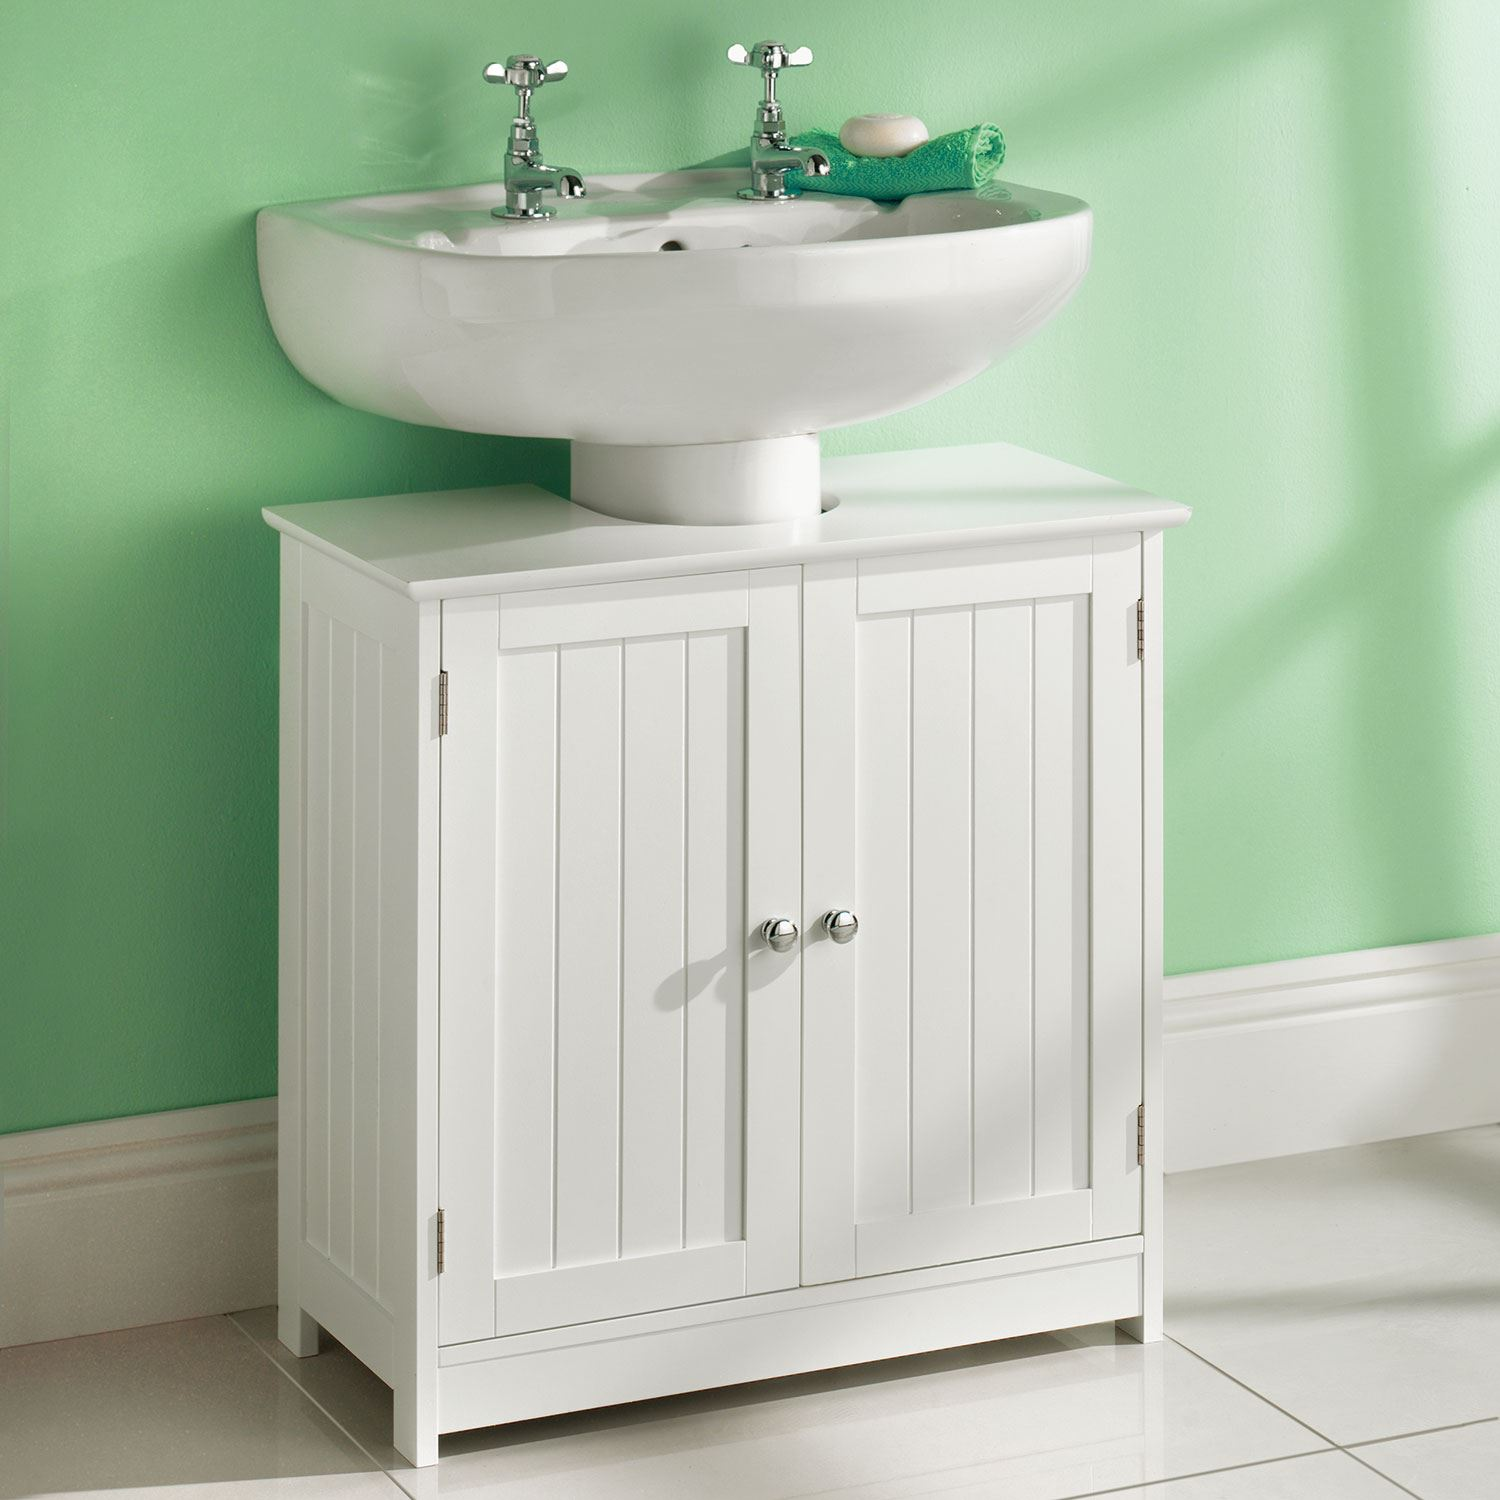 Luxury  About Venice Bathroom Cloakroom Gloss White Vanity Storage Units